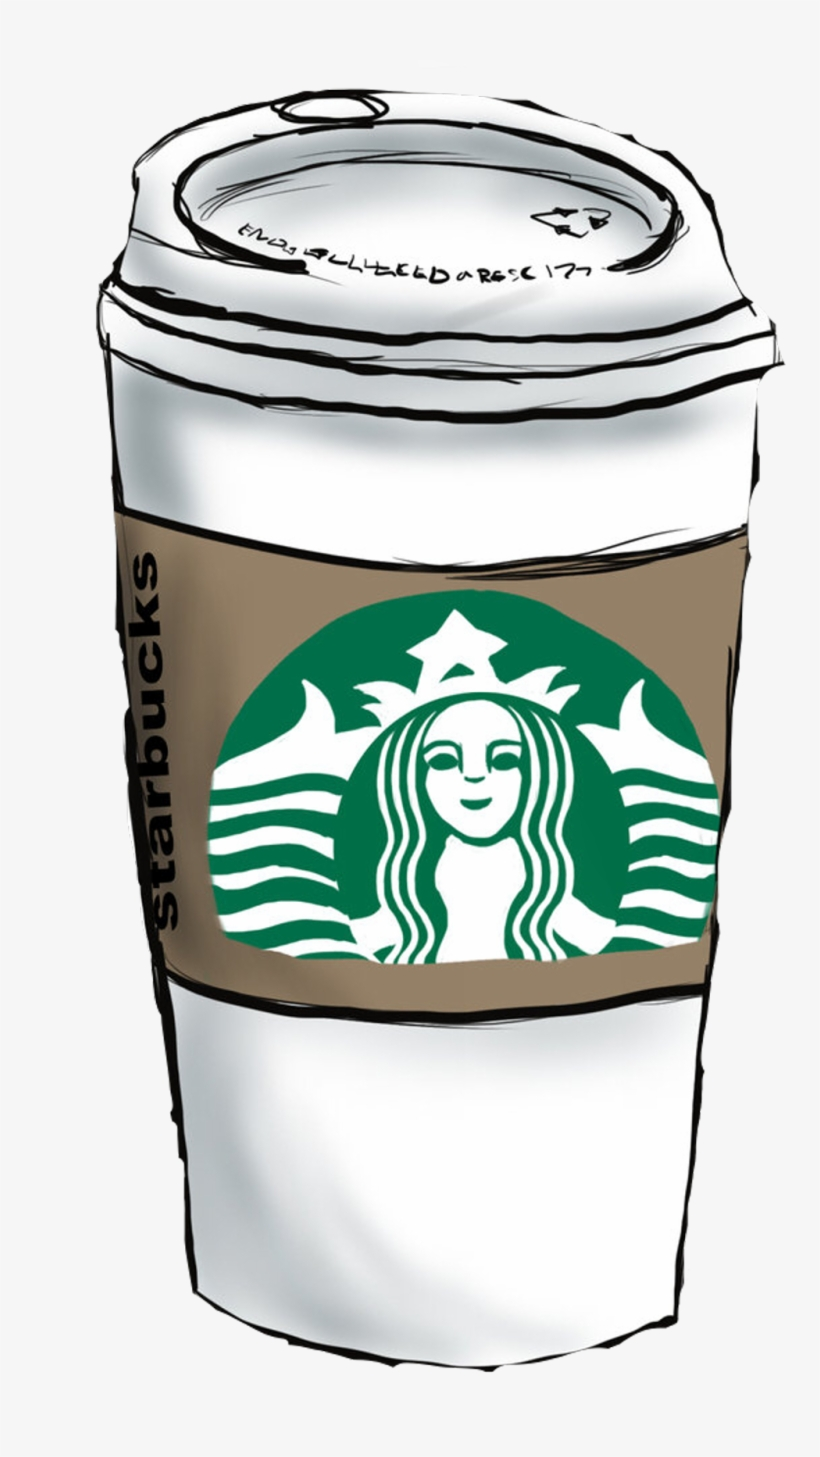 Freetoedot Starbucks Coffee Barista Cup Takeaway Drawing On Starbuck Cups Png Image Transparent Png Free Download On Seekpng